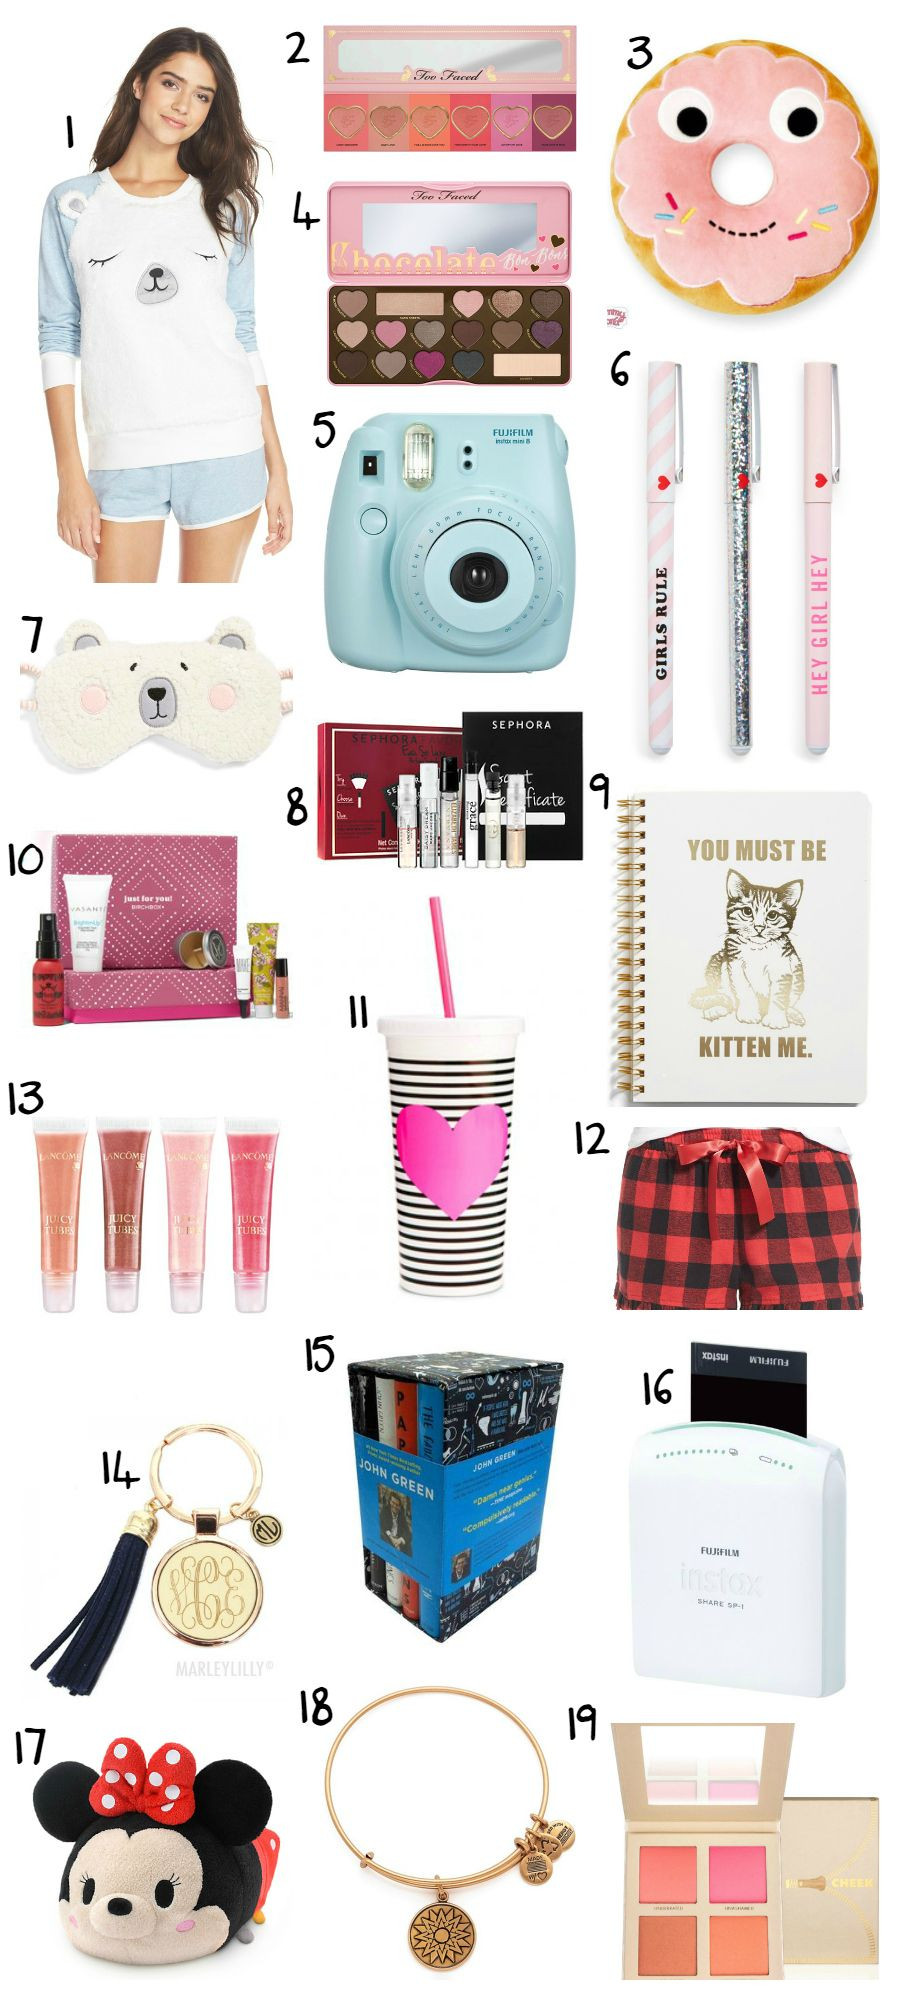 Teenage Girlfriend Gift Ideas  The Best Christmas Gift Ideas for Teens